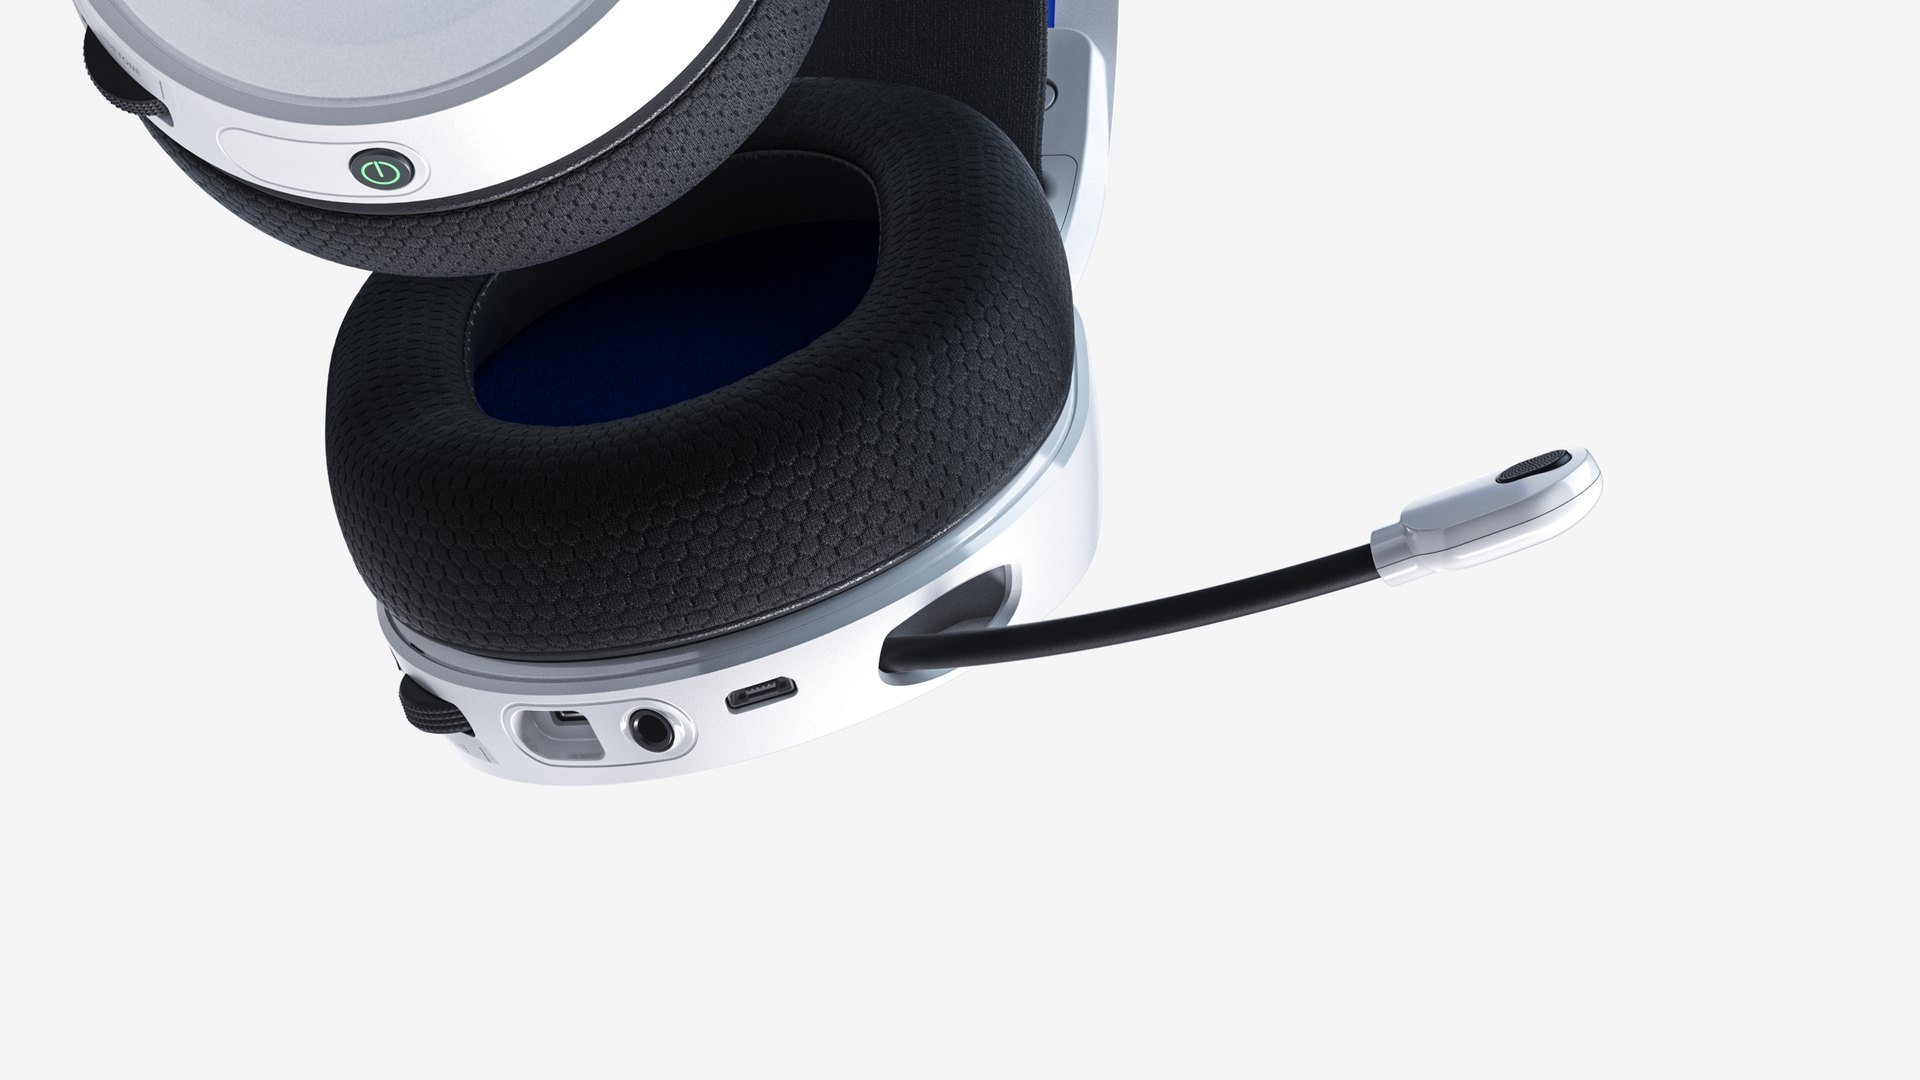 Bottom of the Arctis 7P headset showing the lower controls and the extended microphone